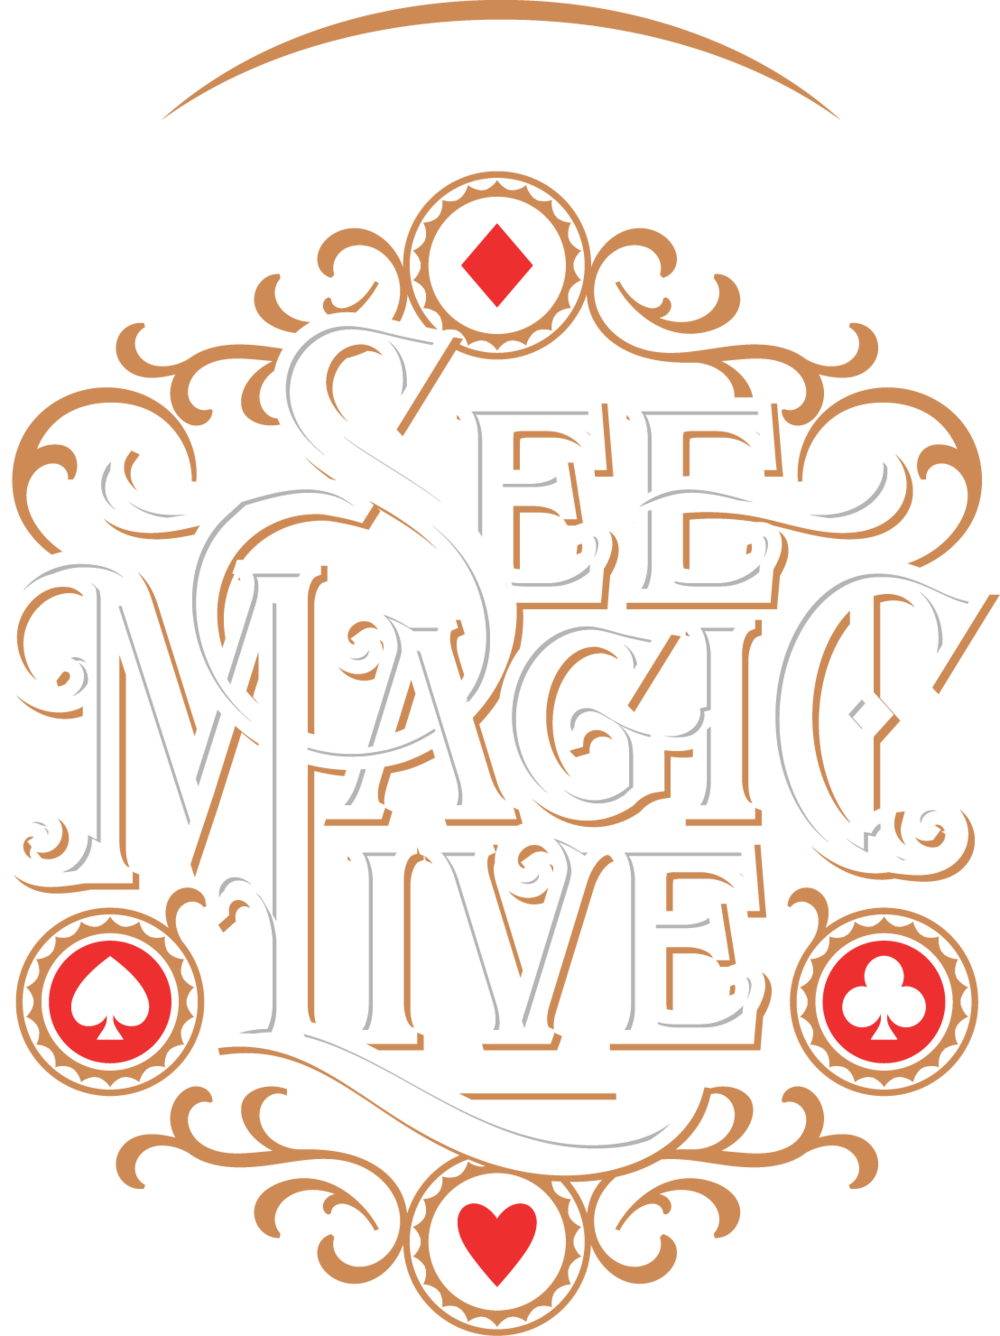 see-magic-live-logo-kostya-kimlat.png